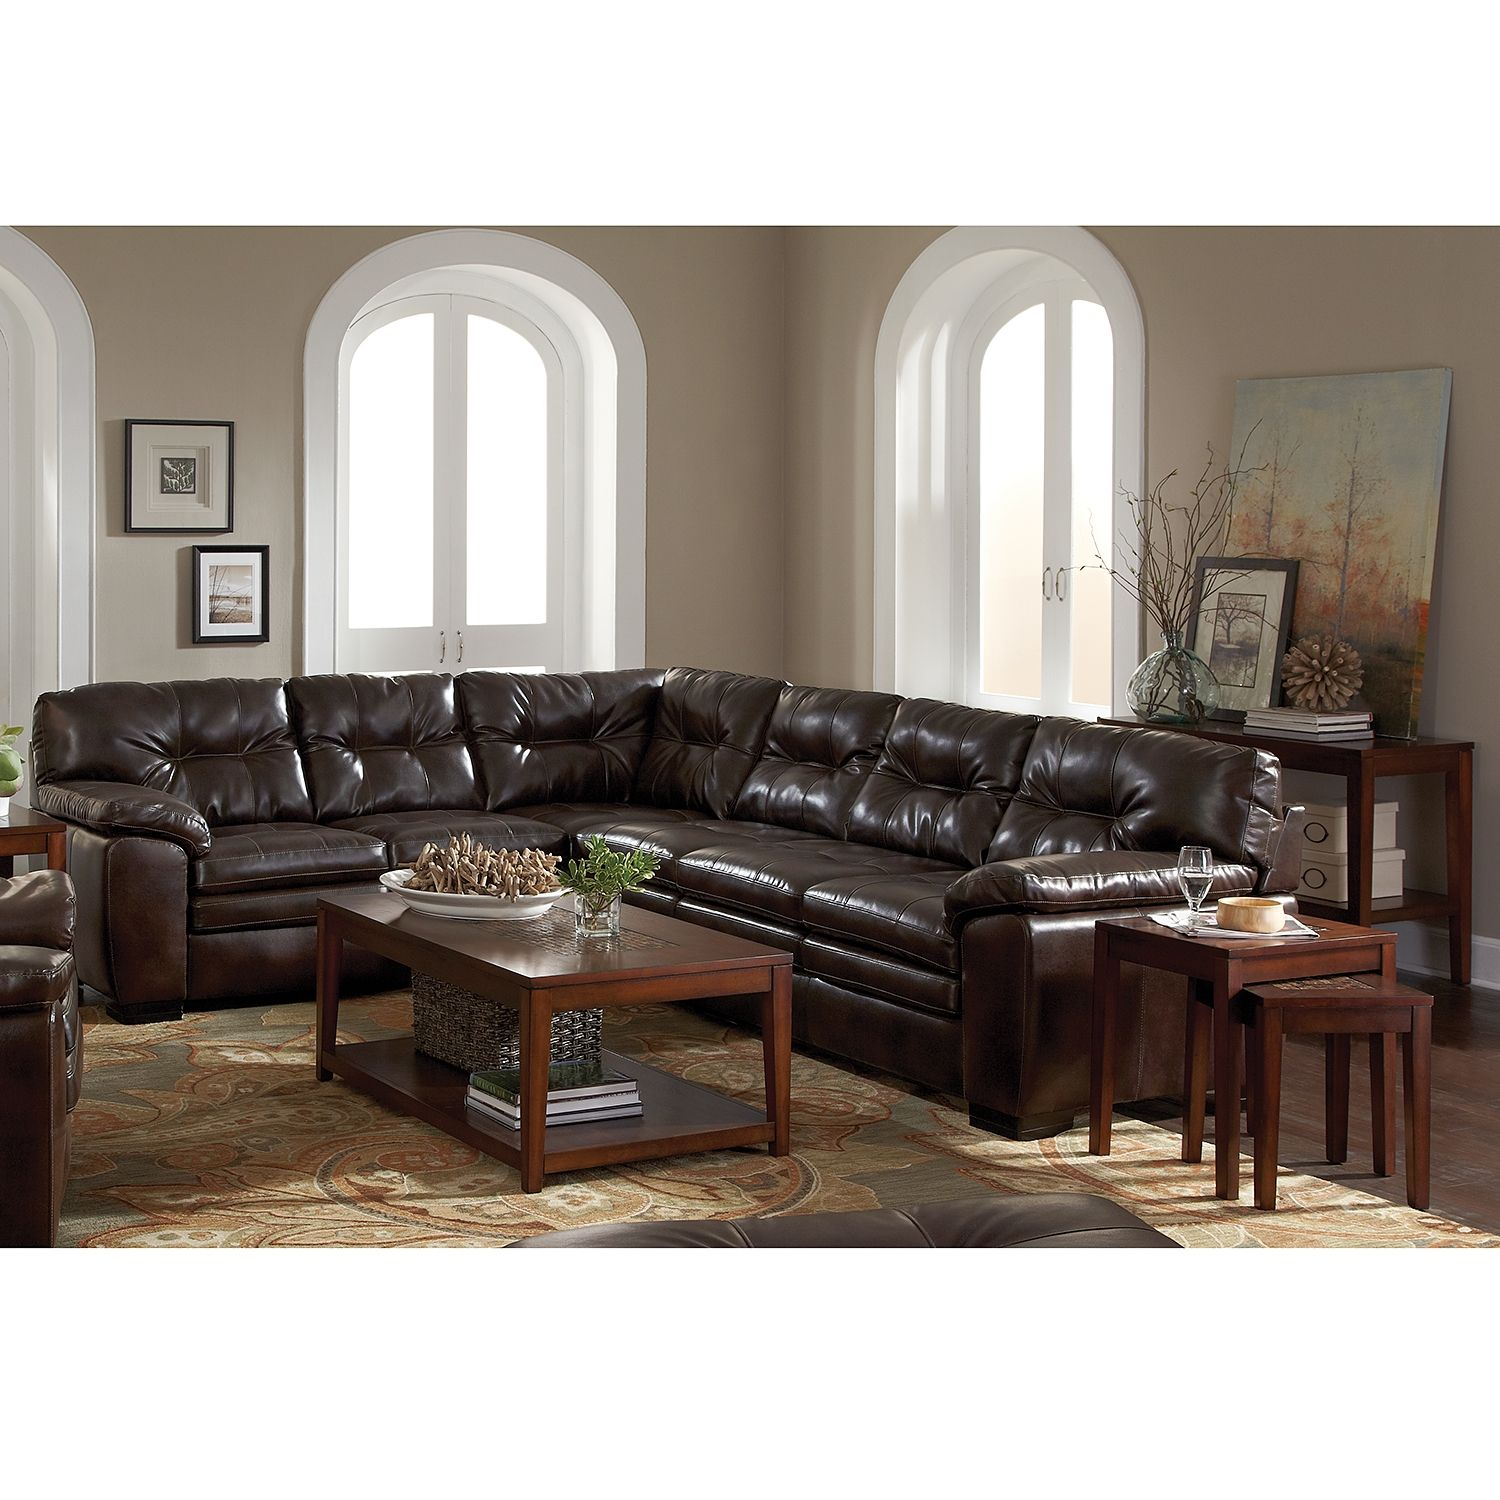 Best Living Room Furniture Legend Brown Ii 2 Pc Sectional 400 x 300